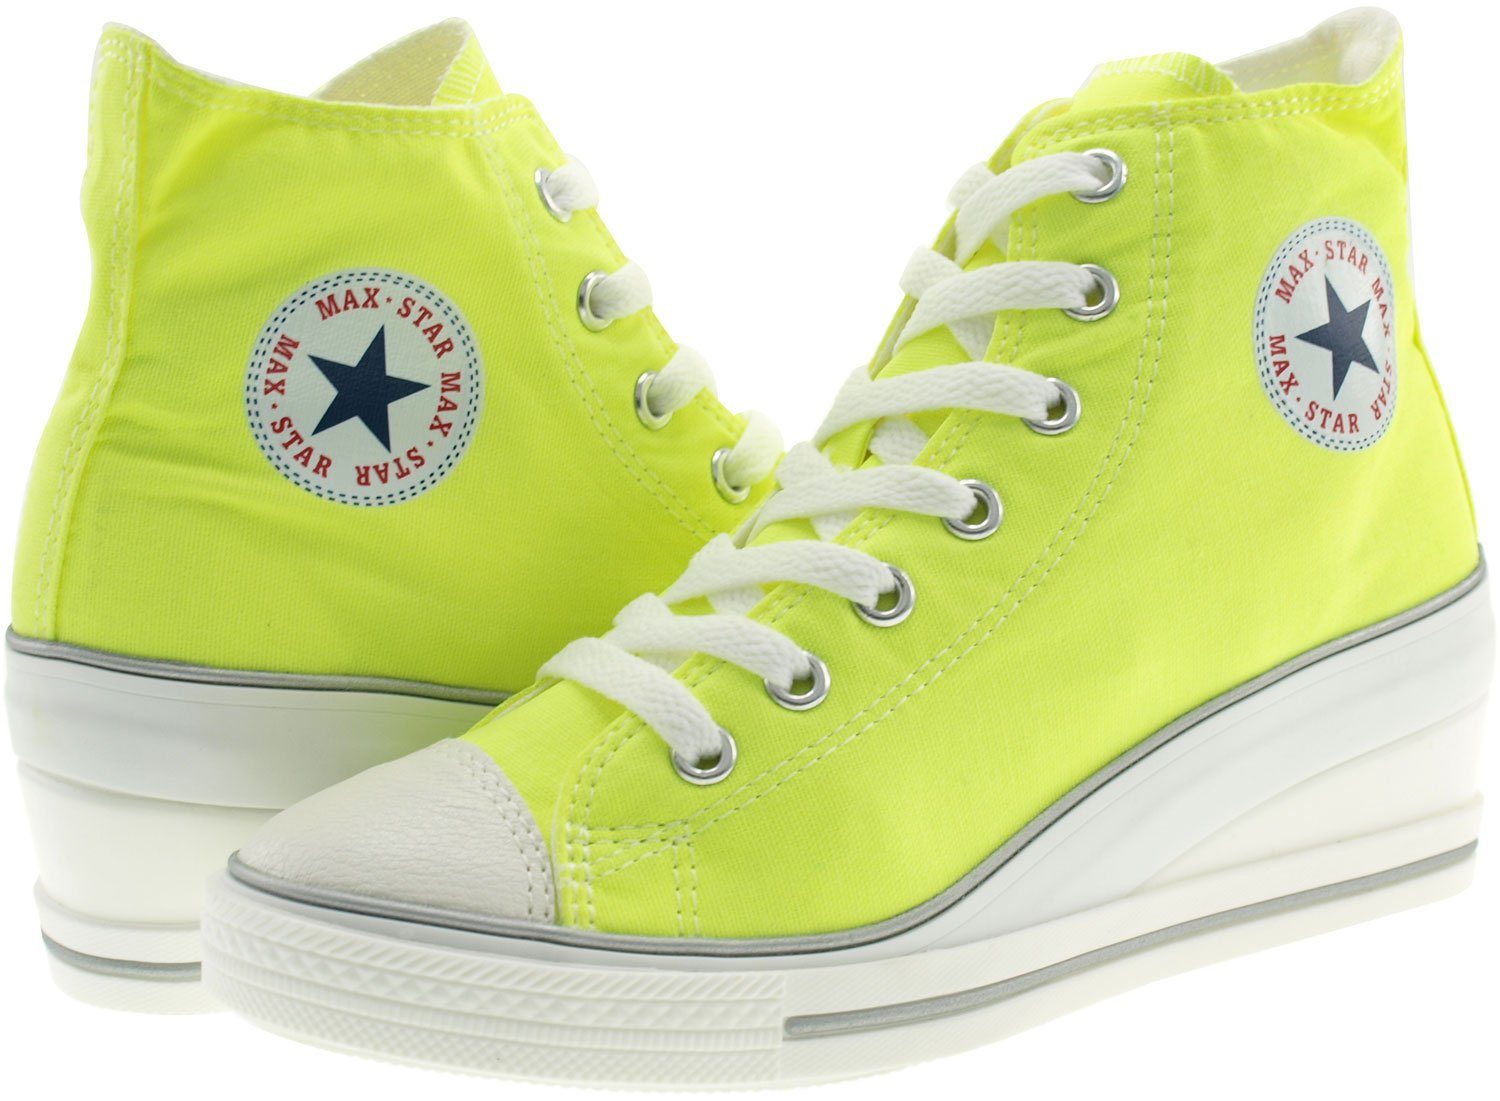 Maxstar Women's 7H Zipper B01G54B44A Low Wedge Heel Sneakers B01G54B44A Zipper 9 B(M) US|Neon Green 315183